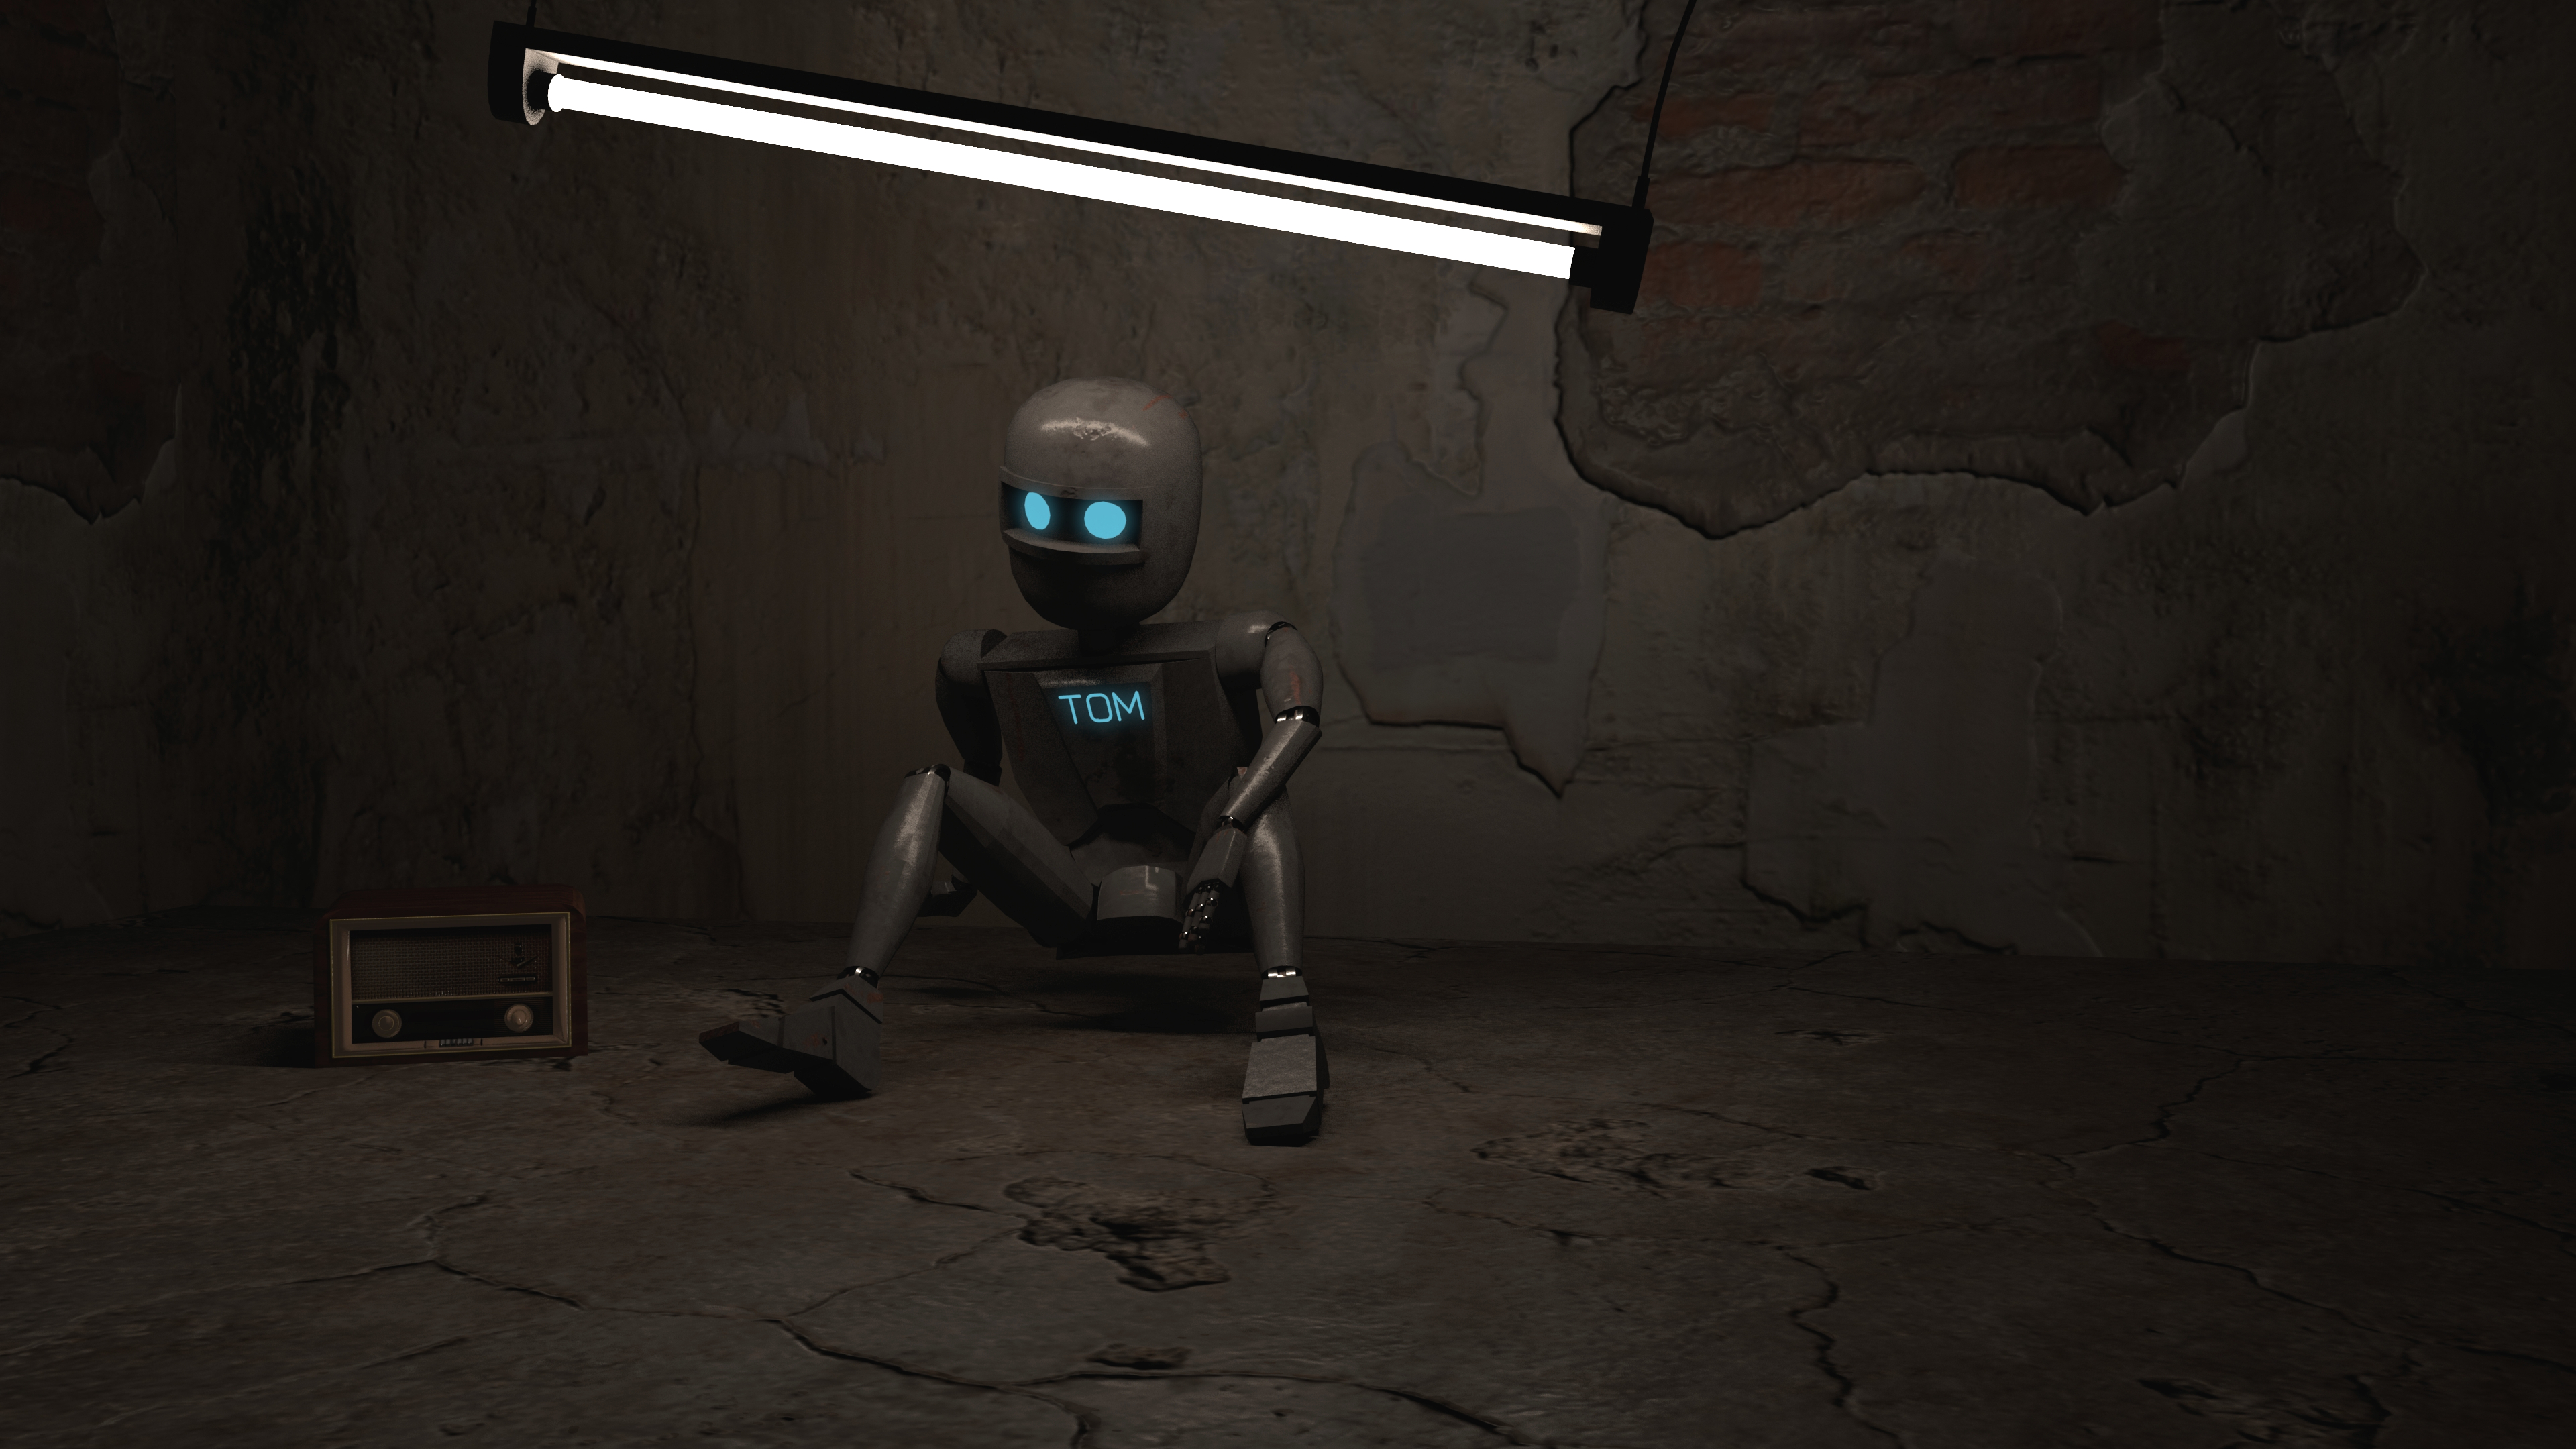 Robot Tom Final Render